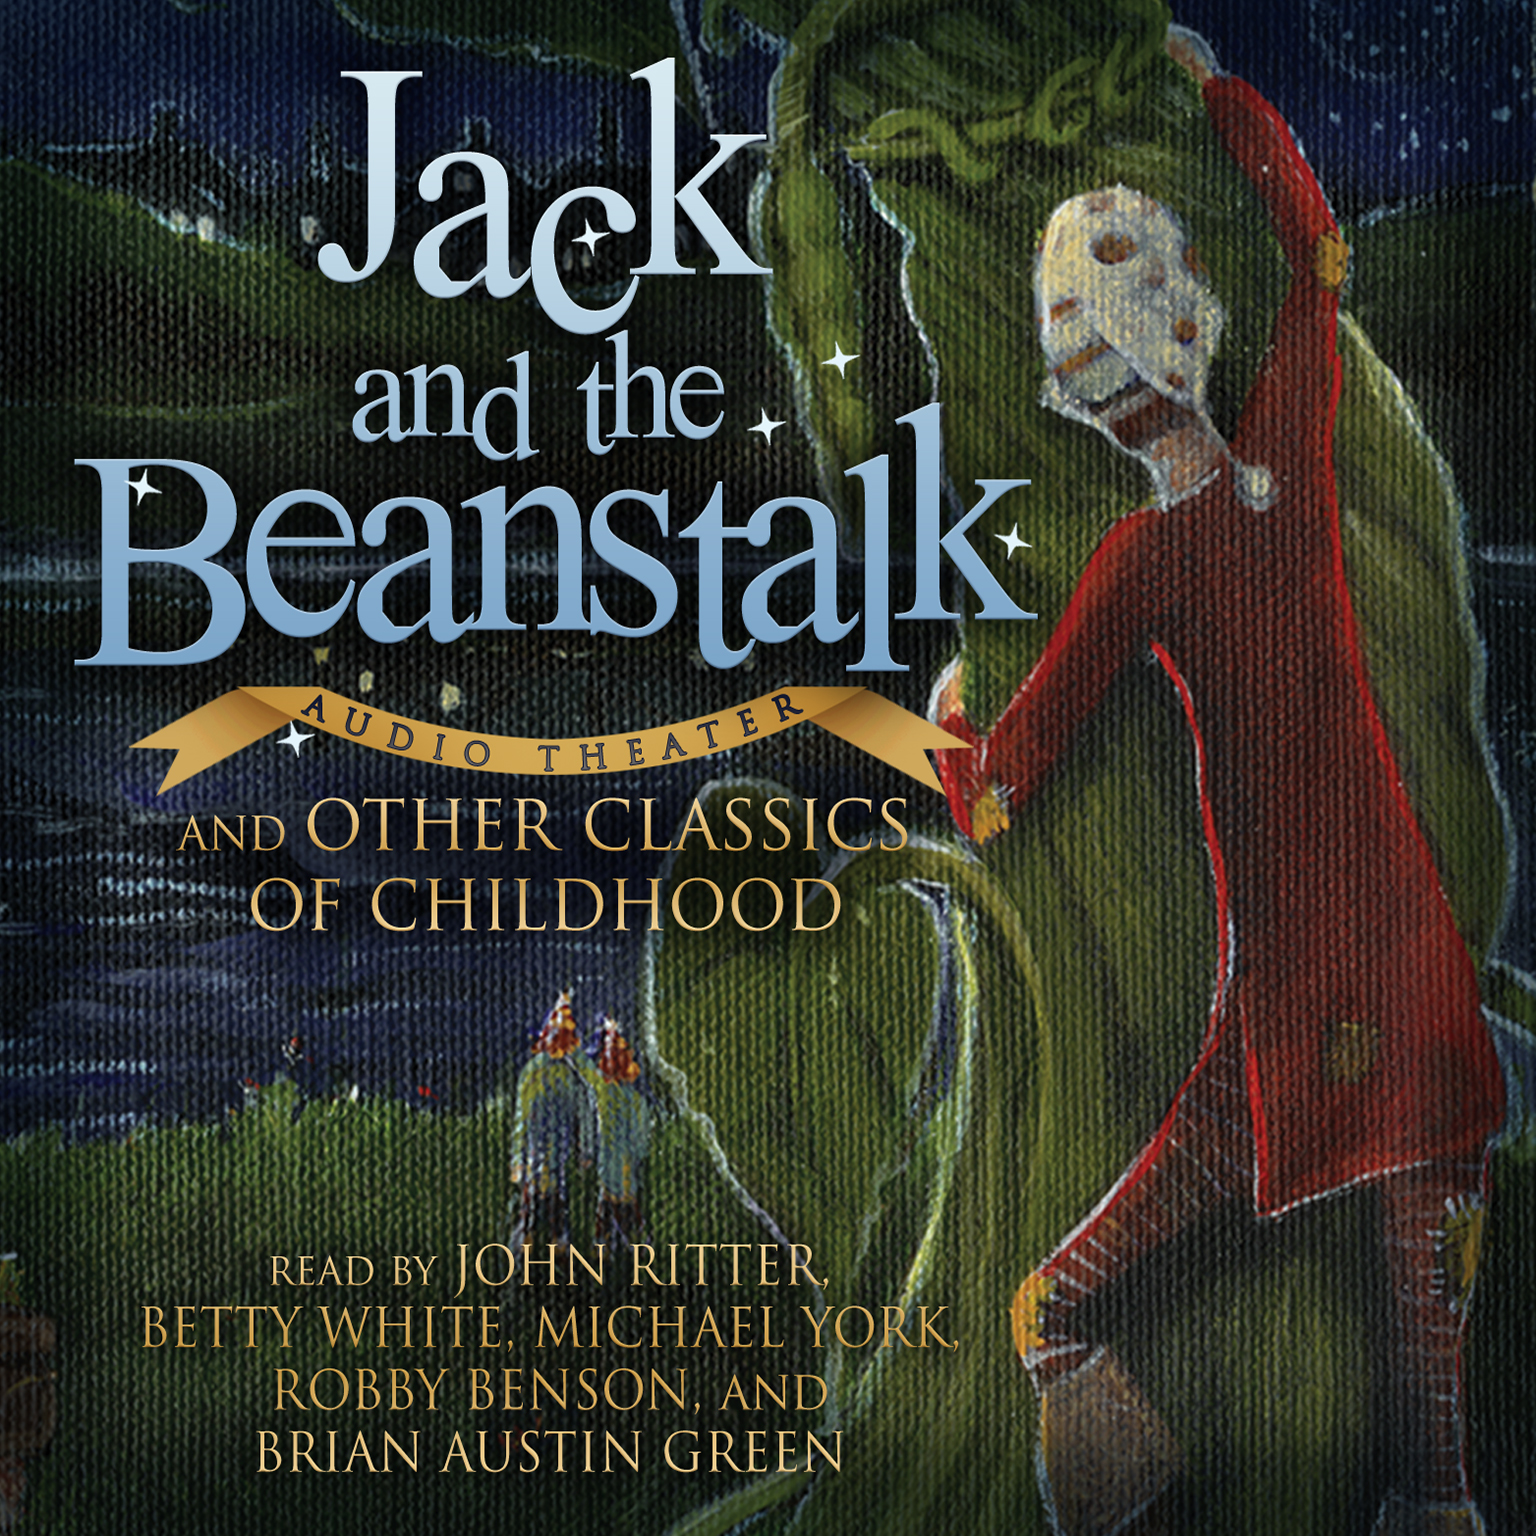 Printable Jack and the Beanstalk and Other Classics of Childhood Audiobook Cover Art